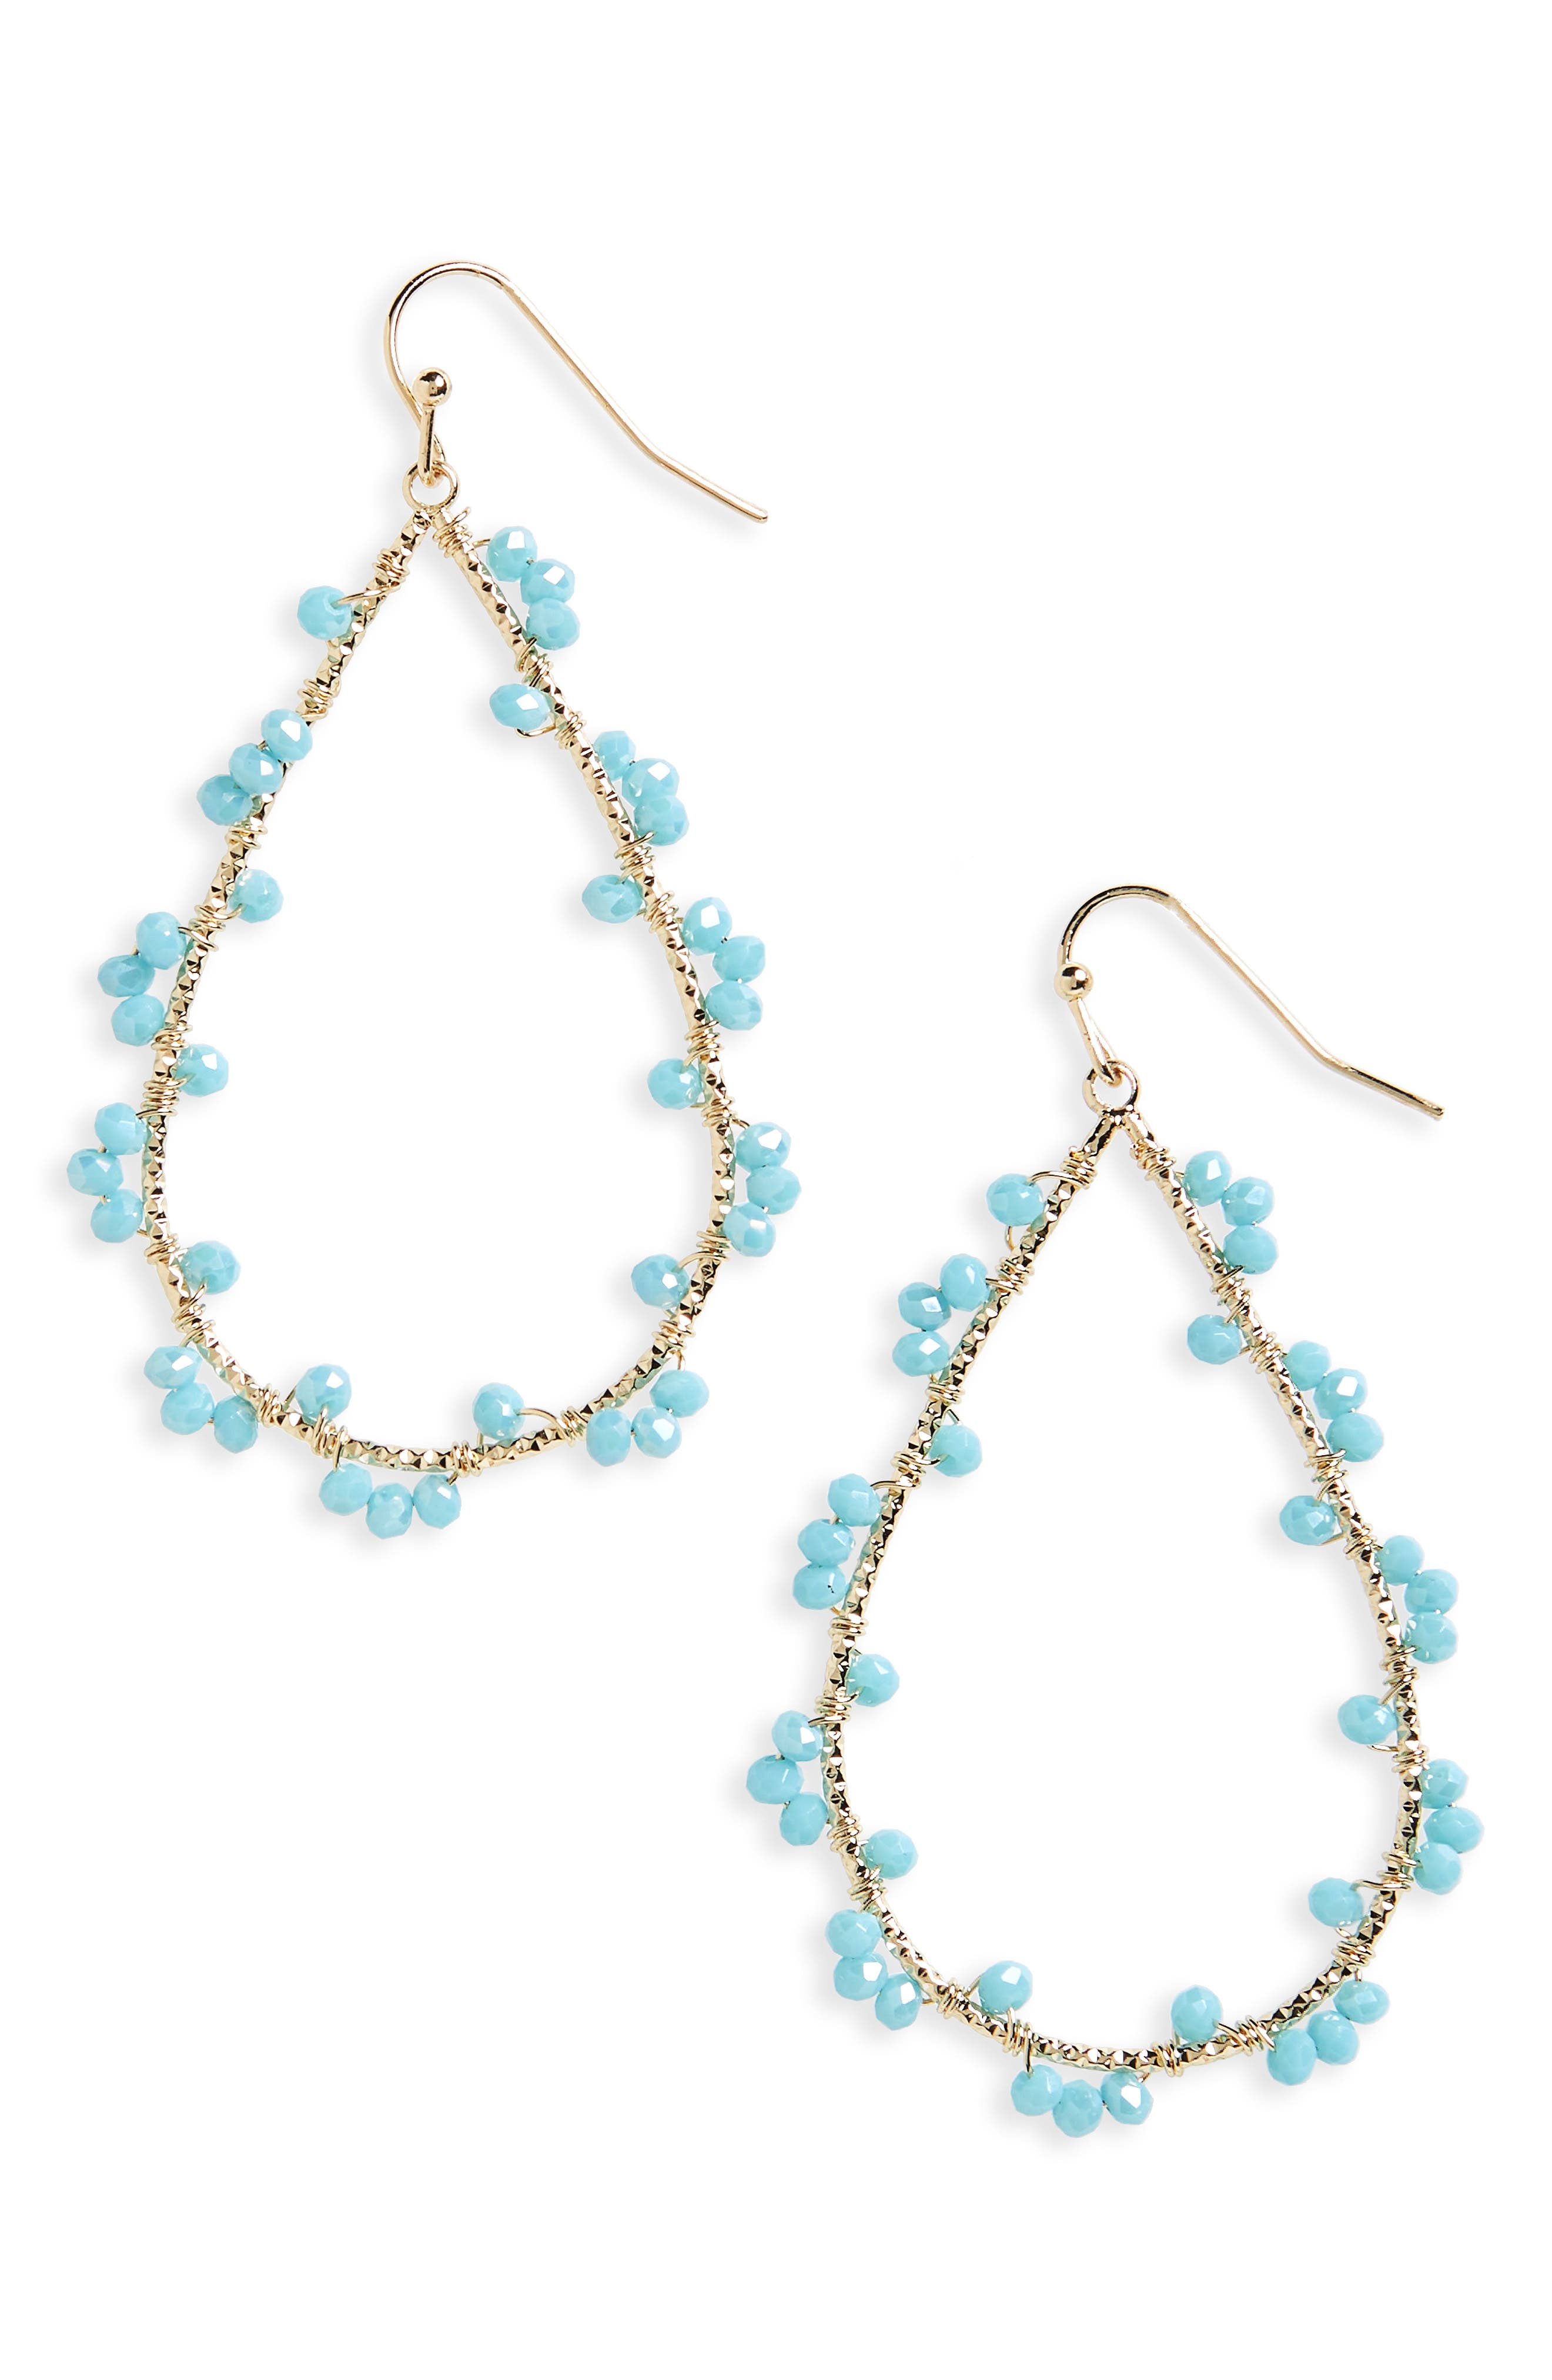 Wired Glass Bead Teardrop Earrings,                             Main thumbnail 1, color,